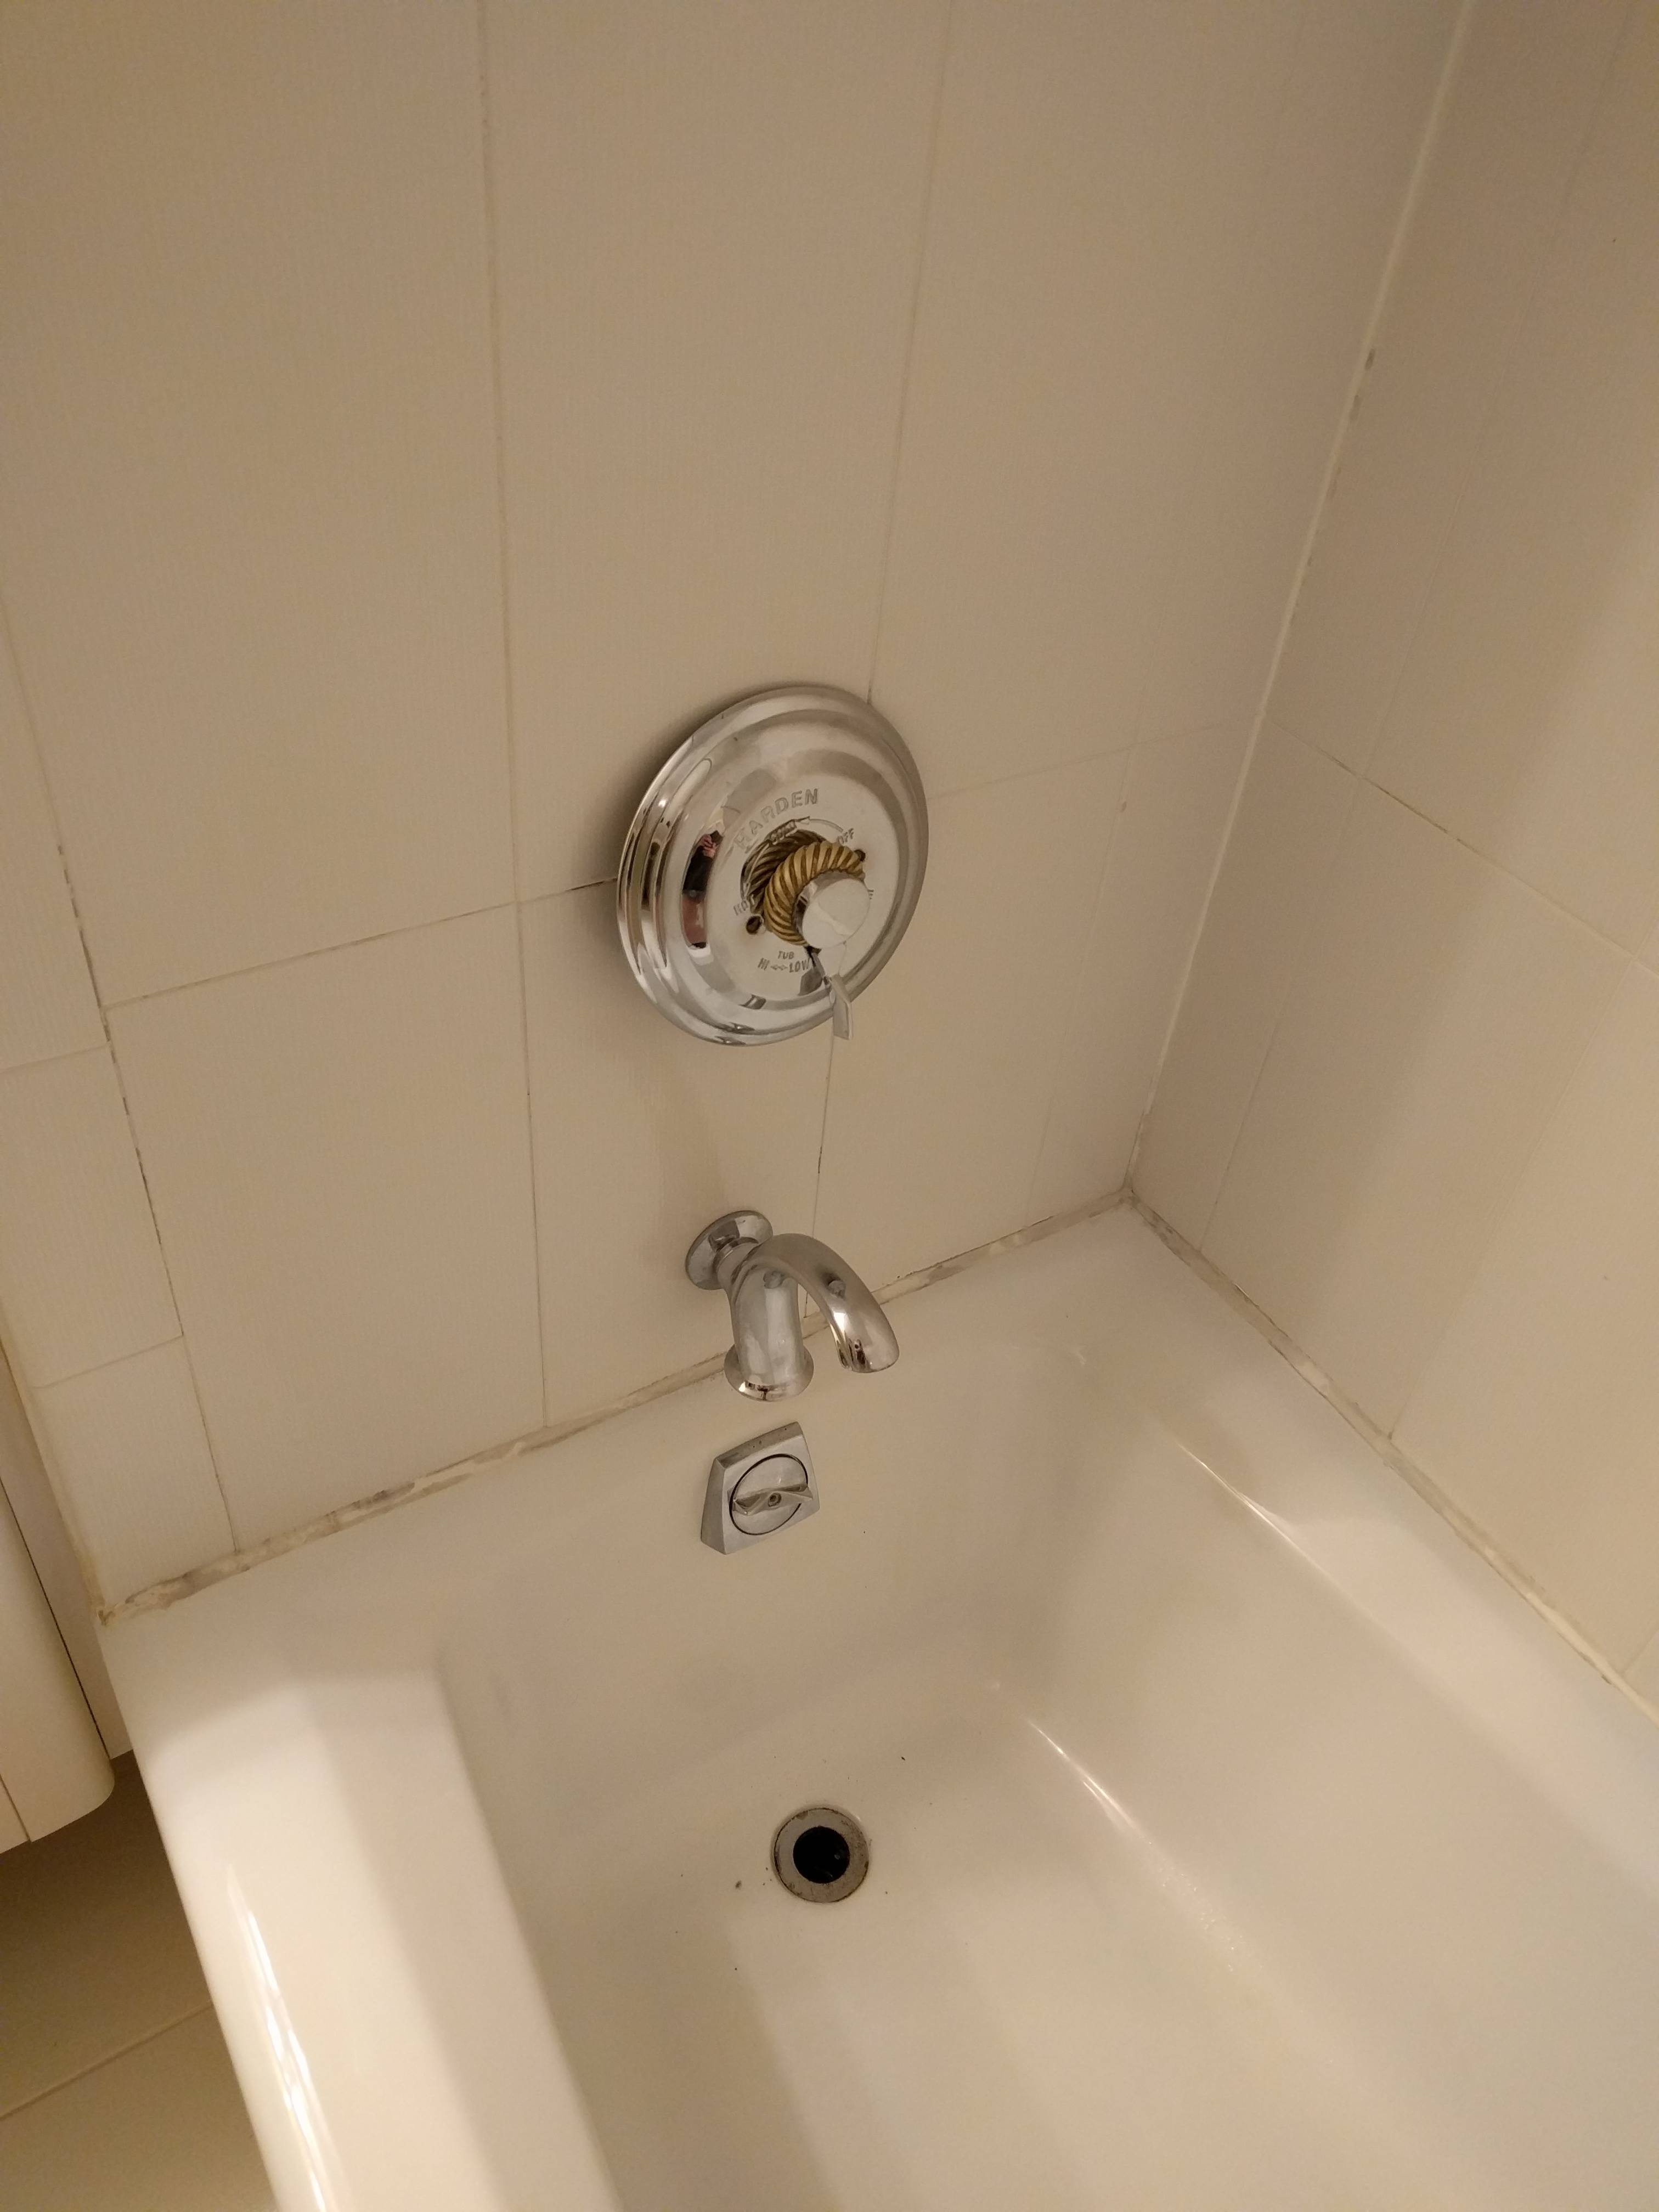 Plumbing How To Disassemble Harden Symmons Tubshower